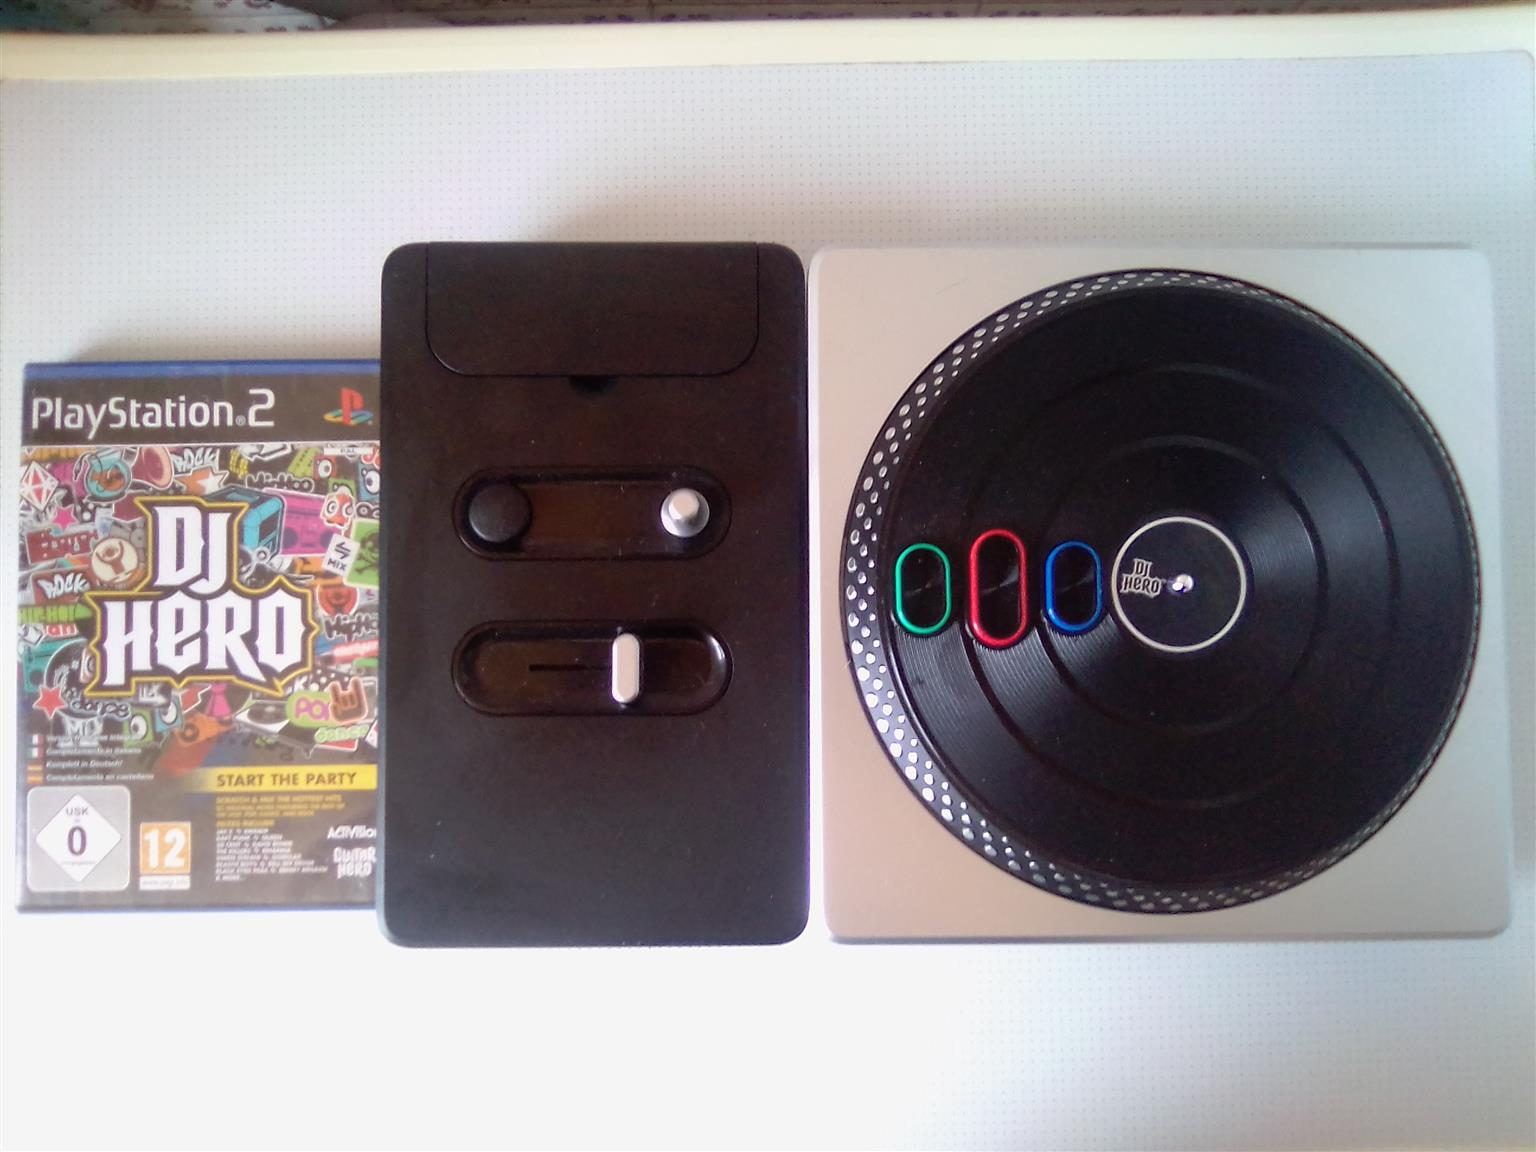 DJ Hero PS3 and PS2 Turntable and Game